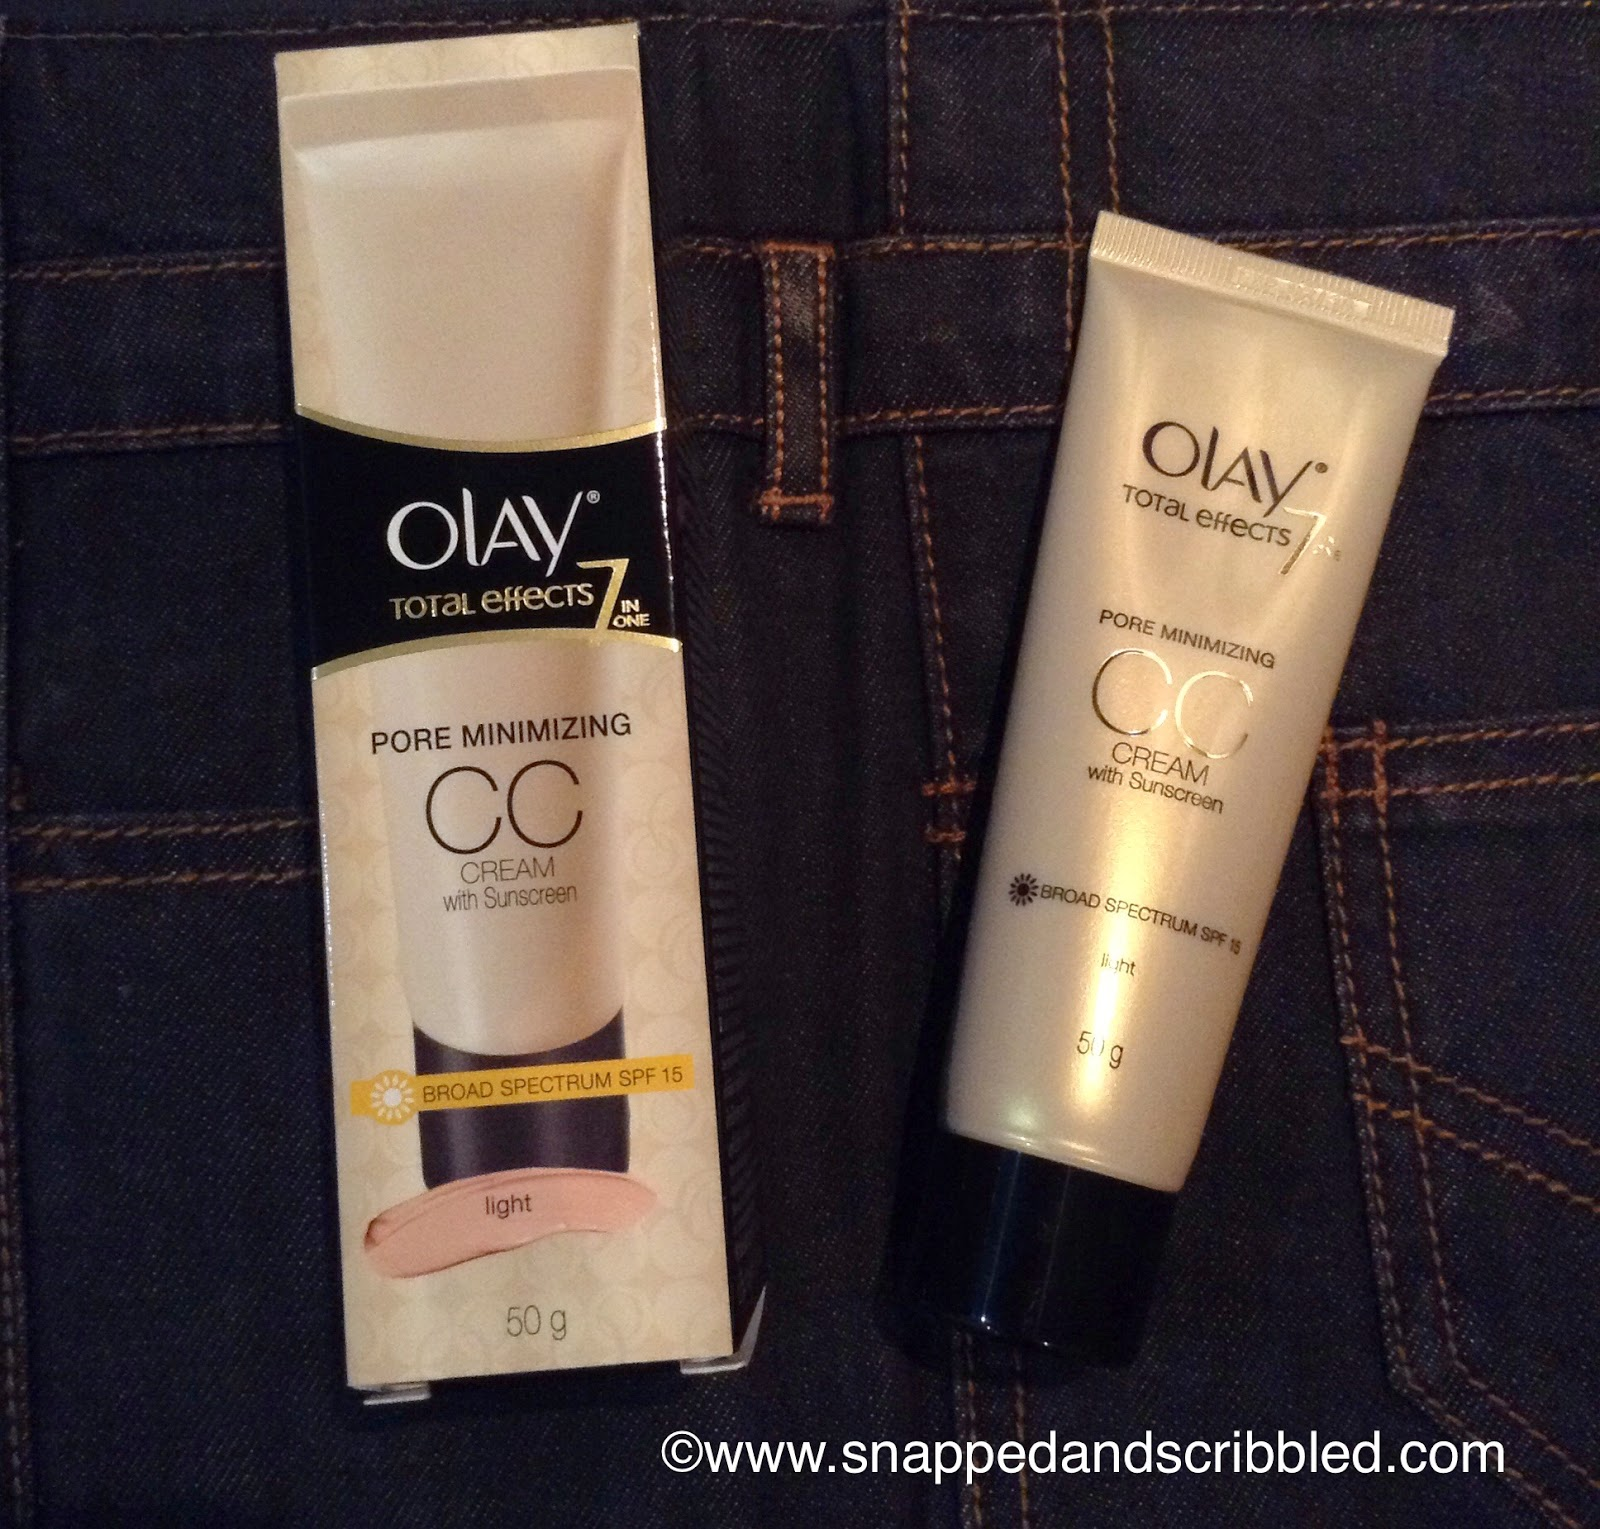 What Beauty Product To Try: Olay Total Effects Pore Minimizing CC Cream